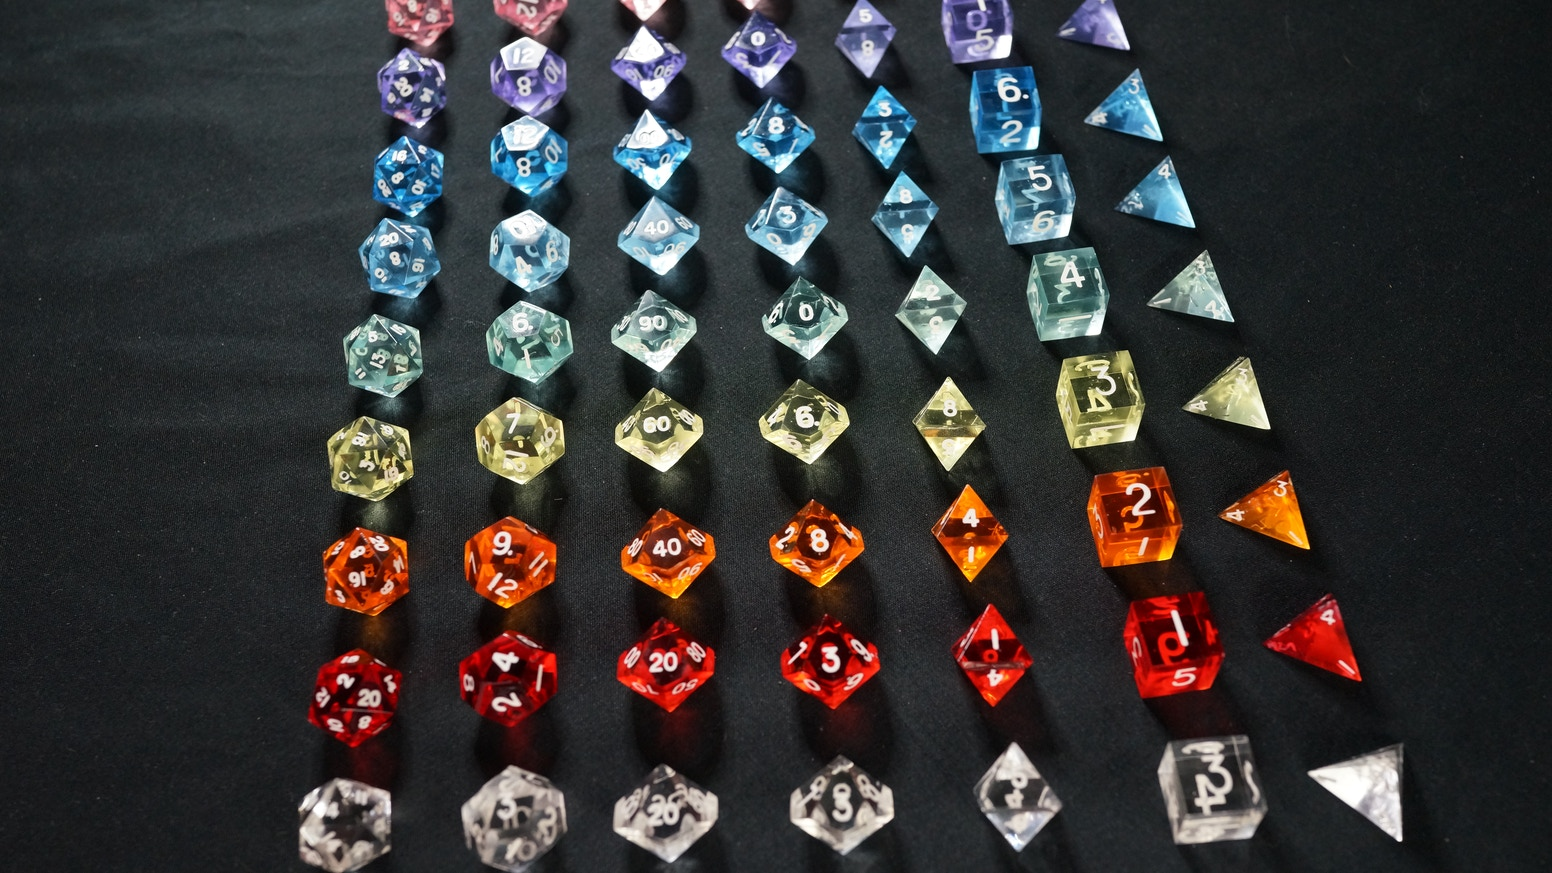 Prism Dice : Handmade from Bulletproof Glass by Relic Dice